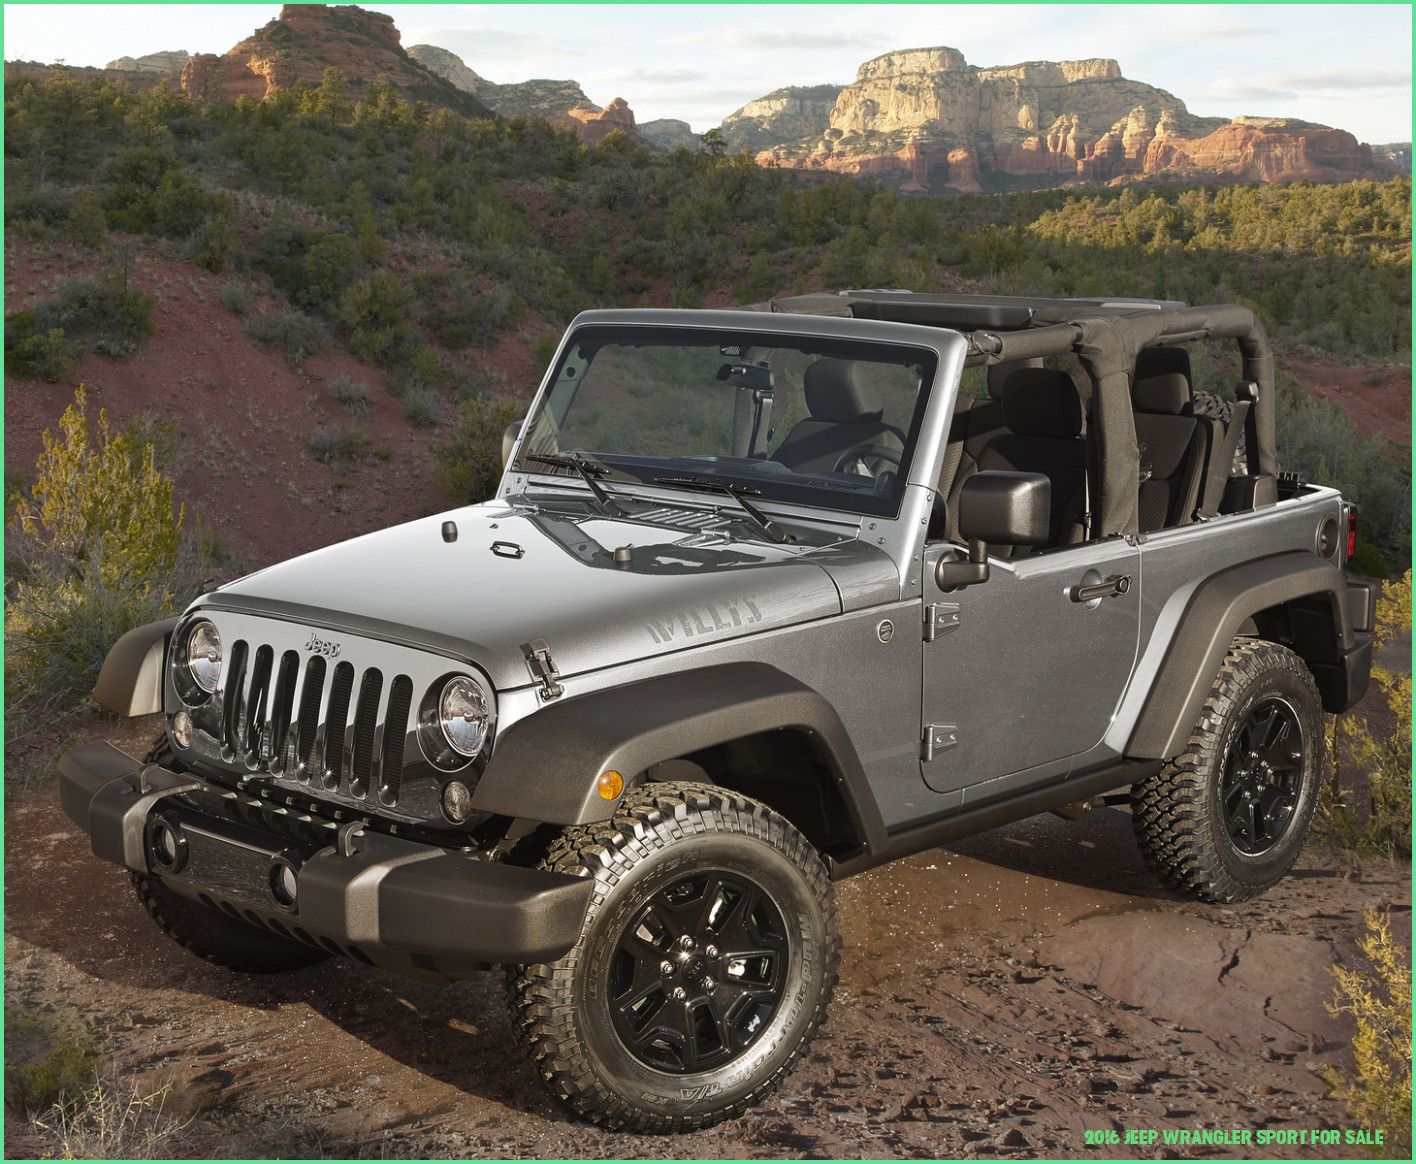 12 Outrageous Ideas For Your 12 Jeep Wrangler Sport For